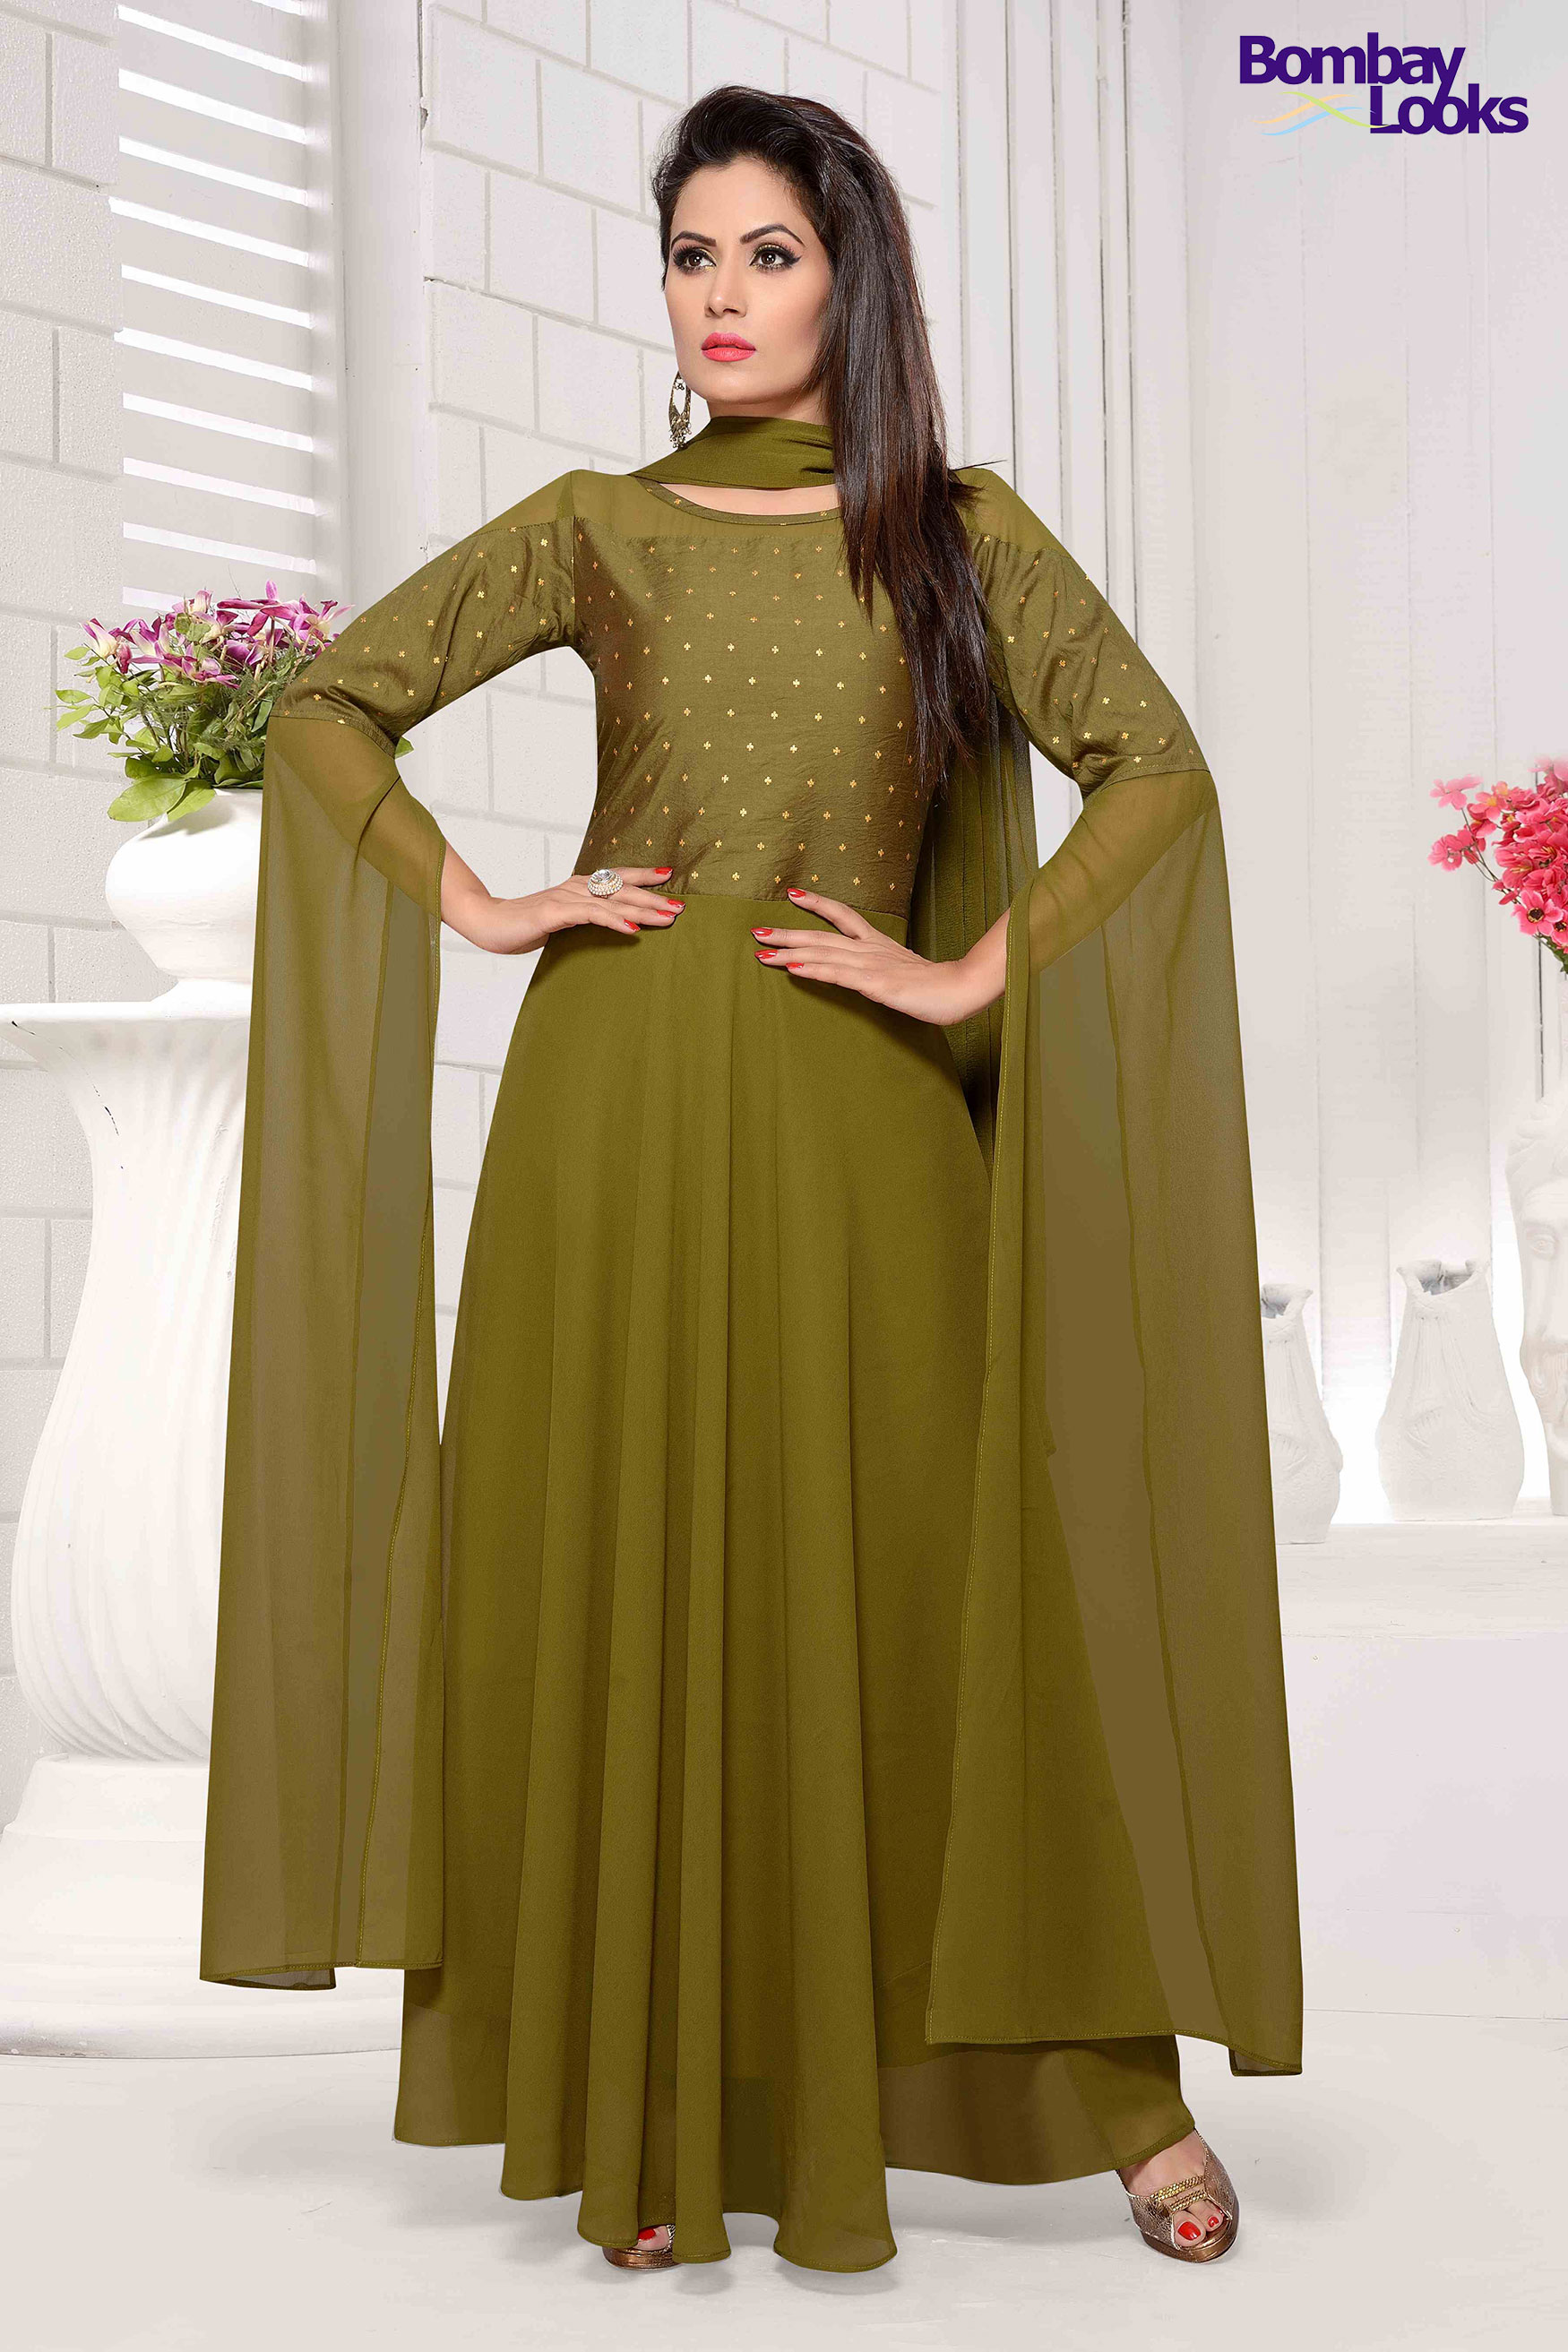 Bollywood Inspired extra long sleeves suit